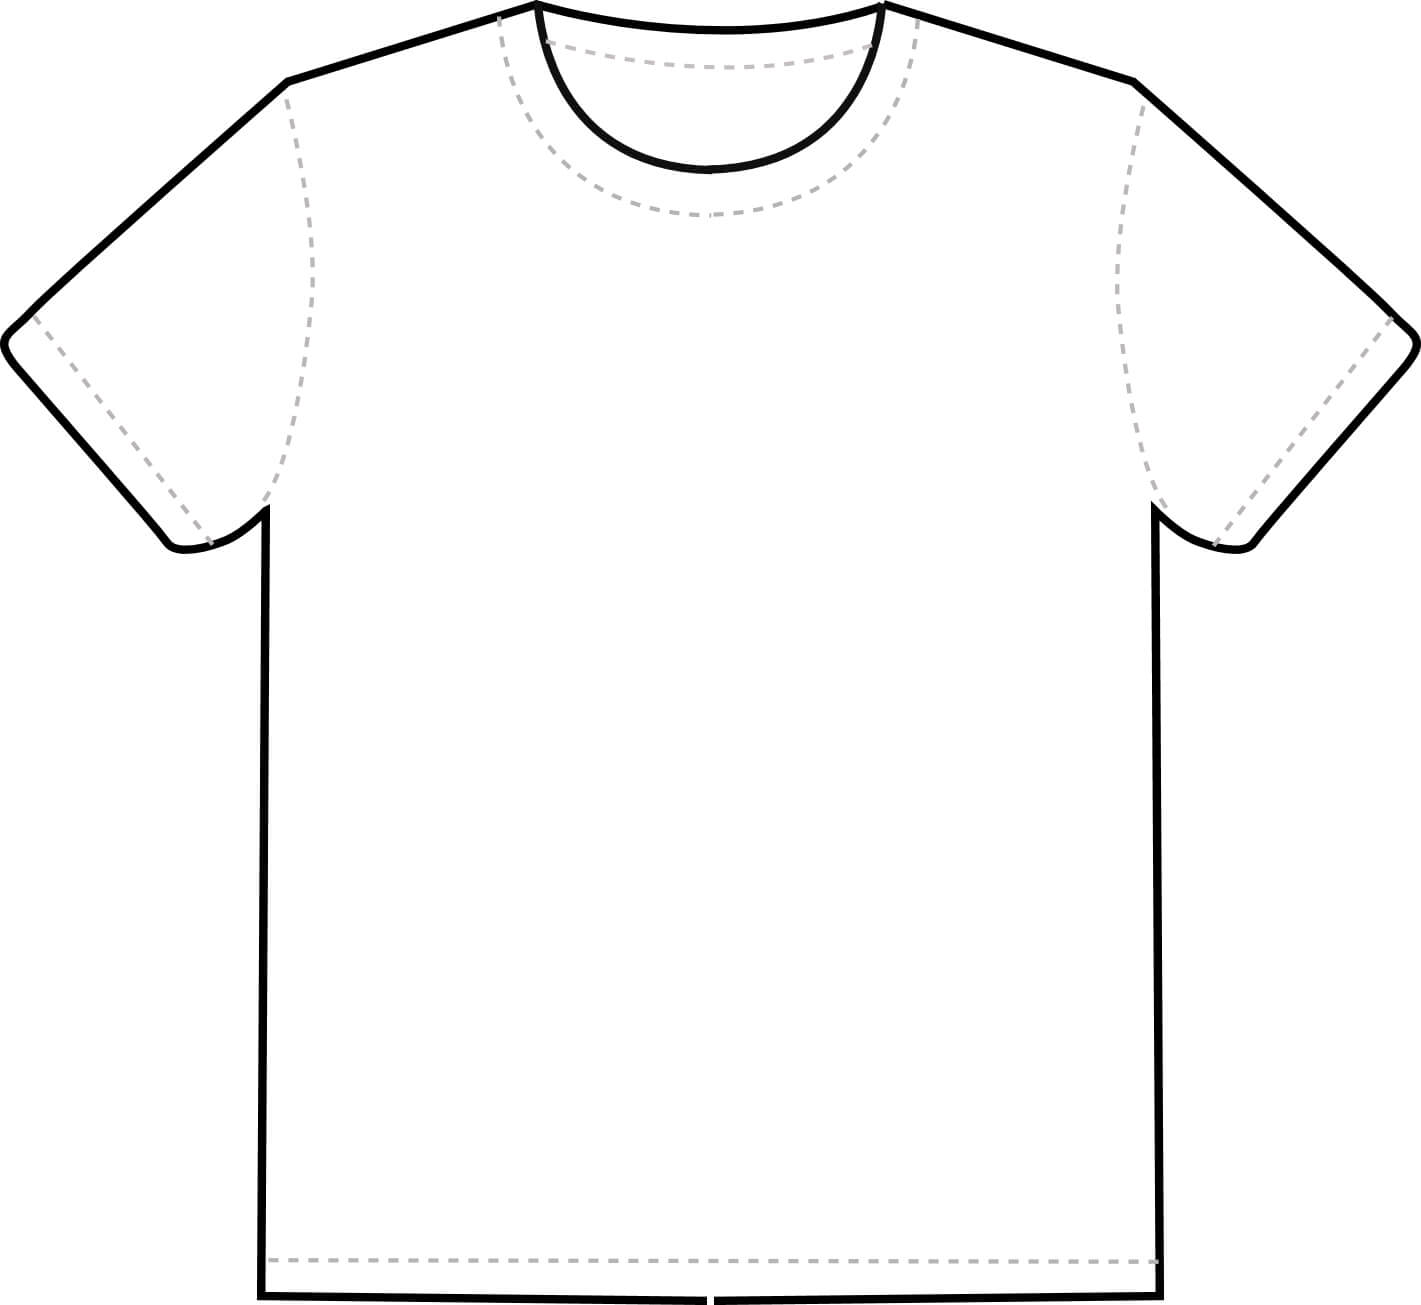 Free Printable T Shirt Template, Download Free Clip Art Intended For Blank Tshirt Template Printable